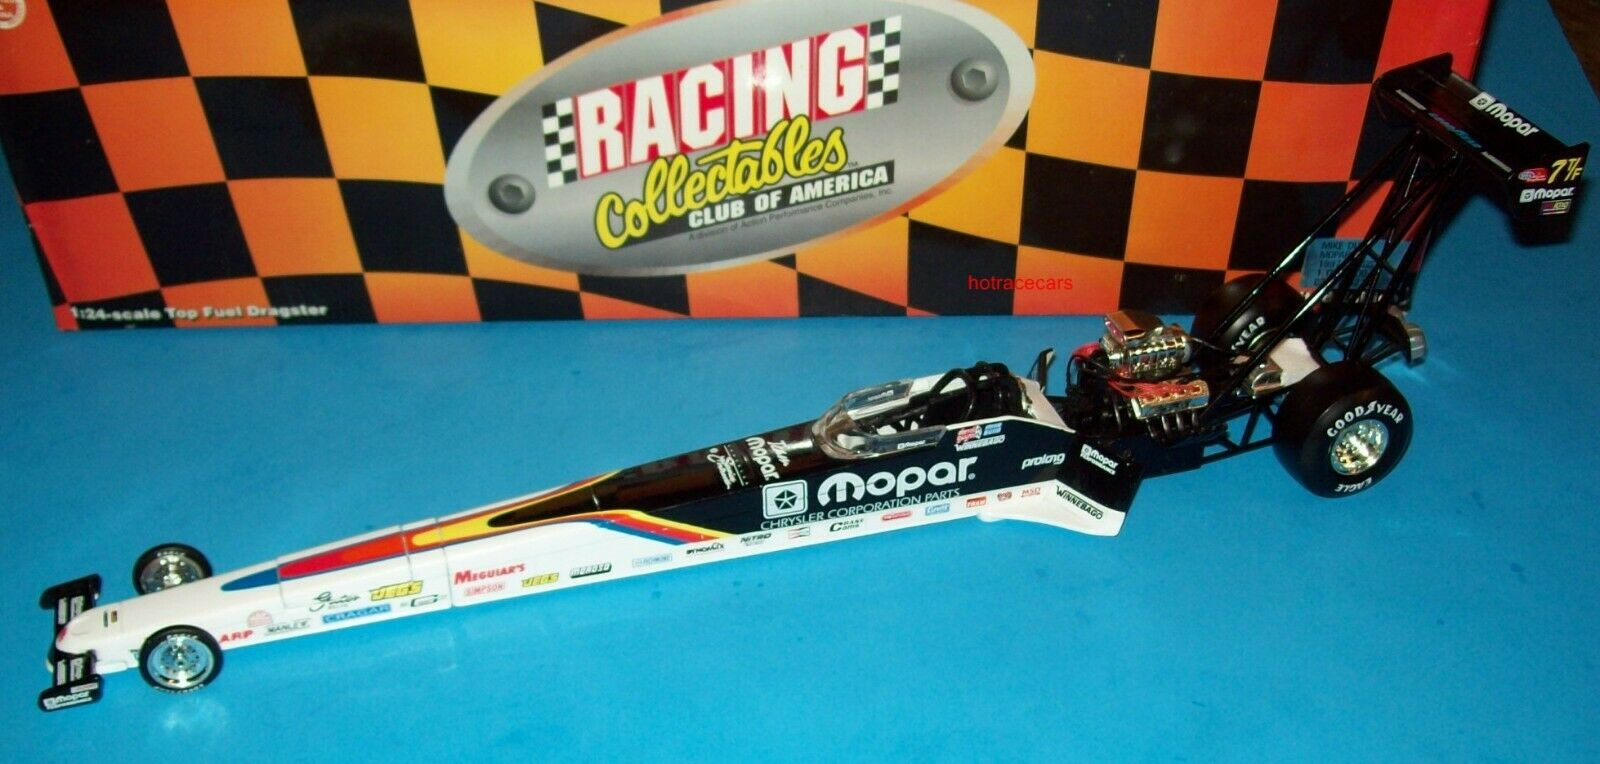 Mike Dunn 1997 équipe MOPAR TOP FUEL DRAGSTER 1 24 Racing Collectables Club of America Vintage National Hot Rod Association diecast NEUF